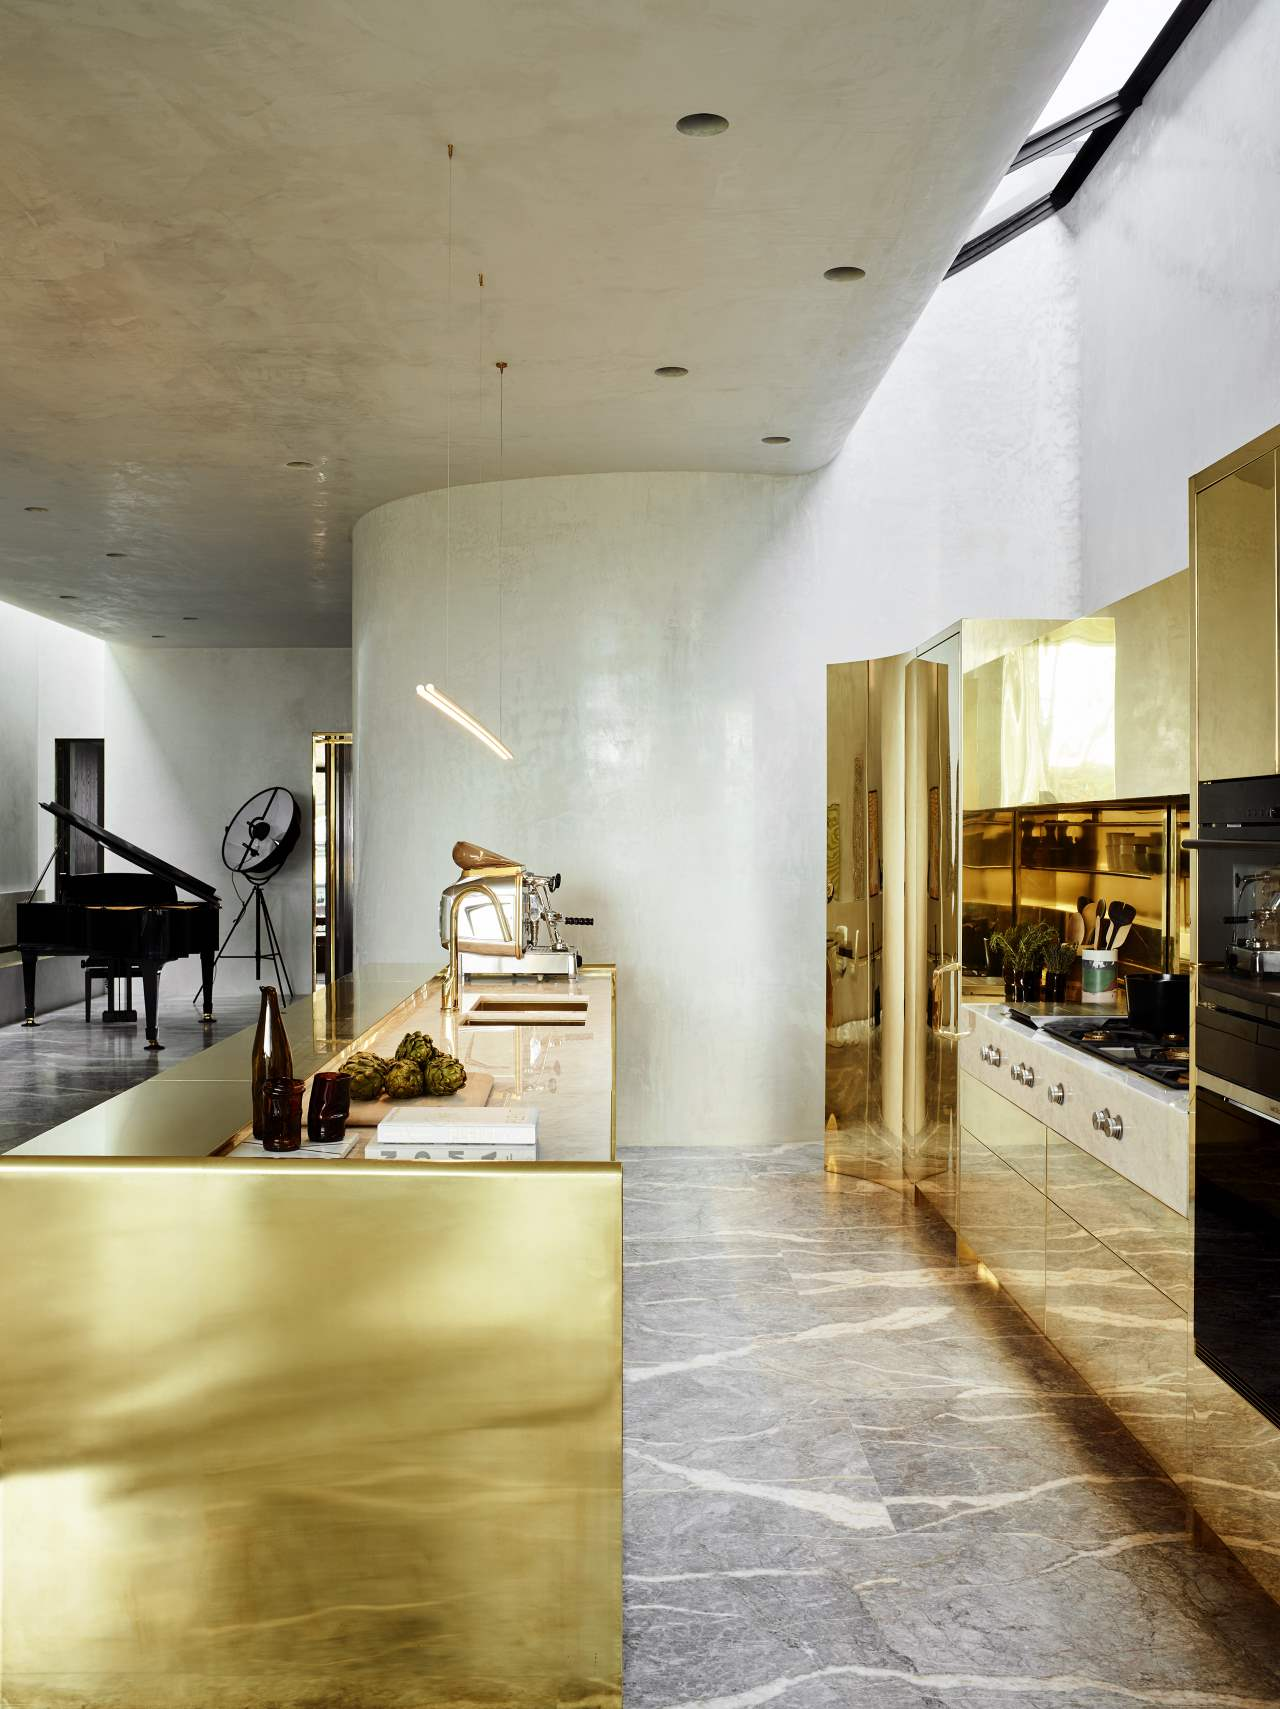 The kitchen has a strong wow factor, it's done with brass, marble and concrete, it shines from a distance